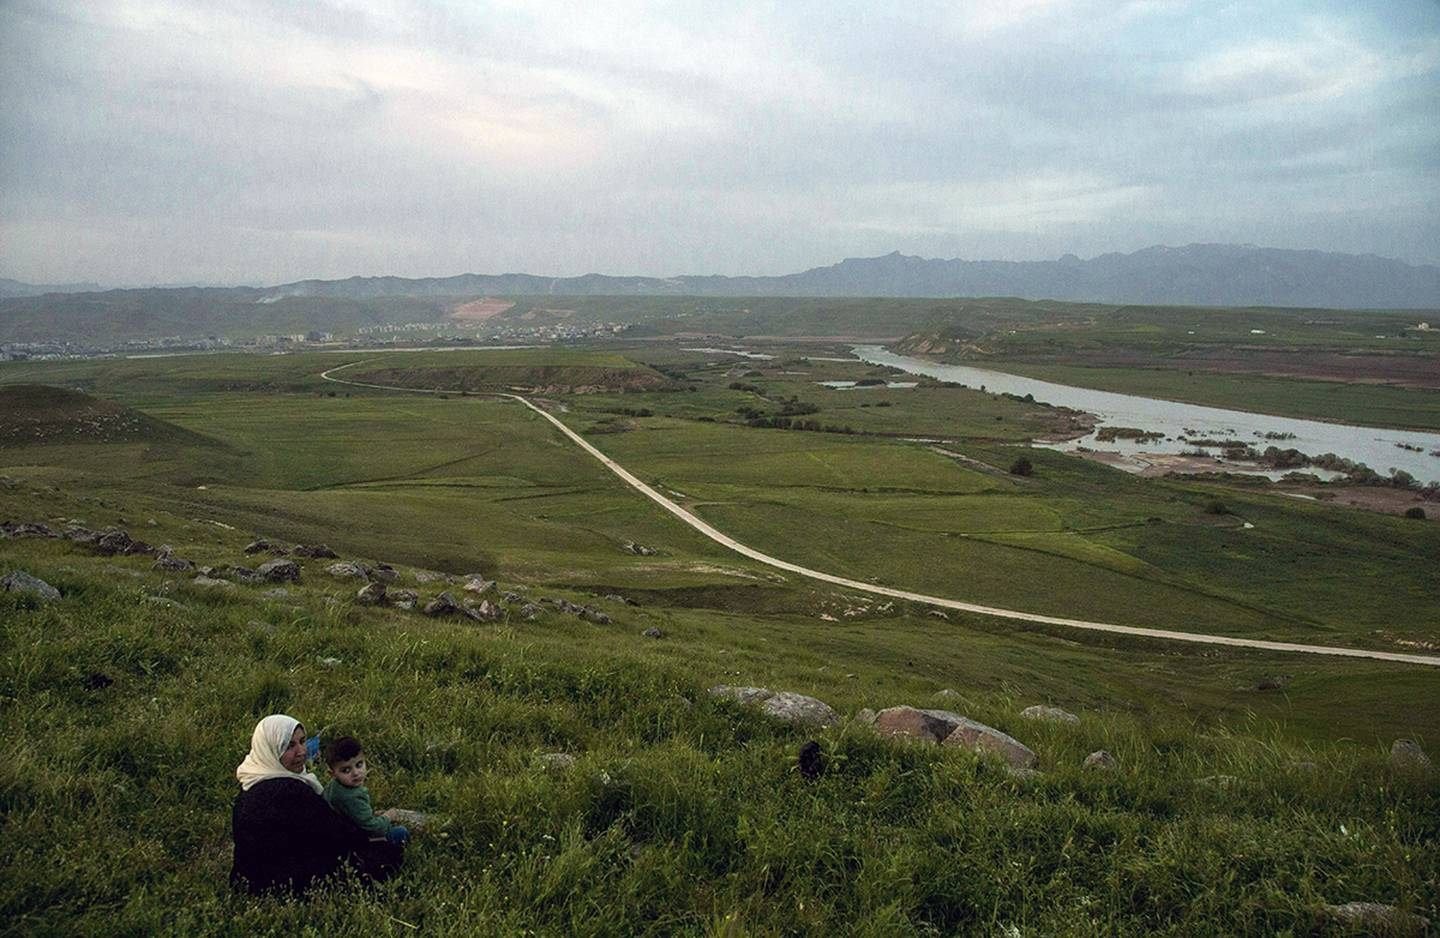 In this file photo dated May 1, 2019, a woman and child sit on a hill overlooking the Euphrates River as families picnic on May Day, in Derik, Syria.